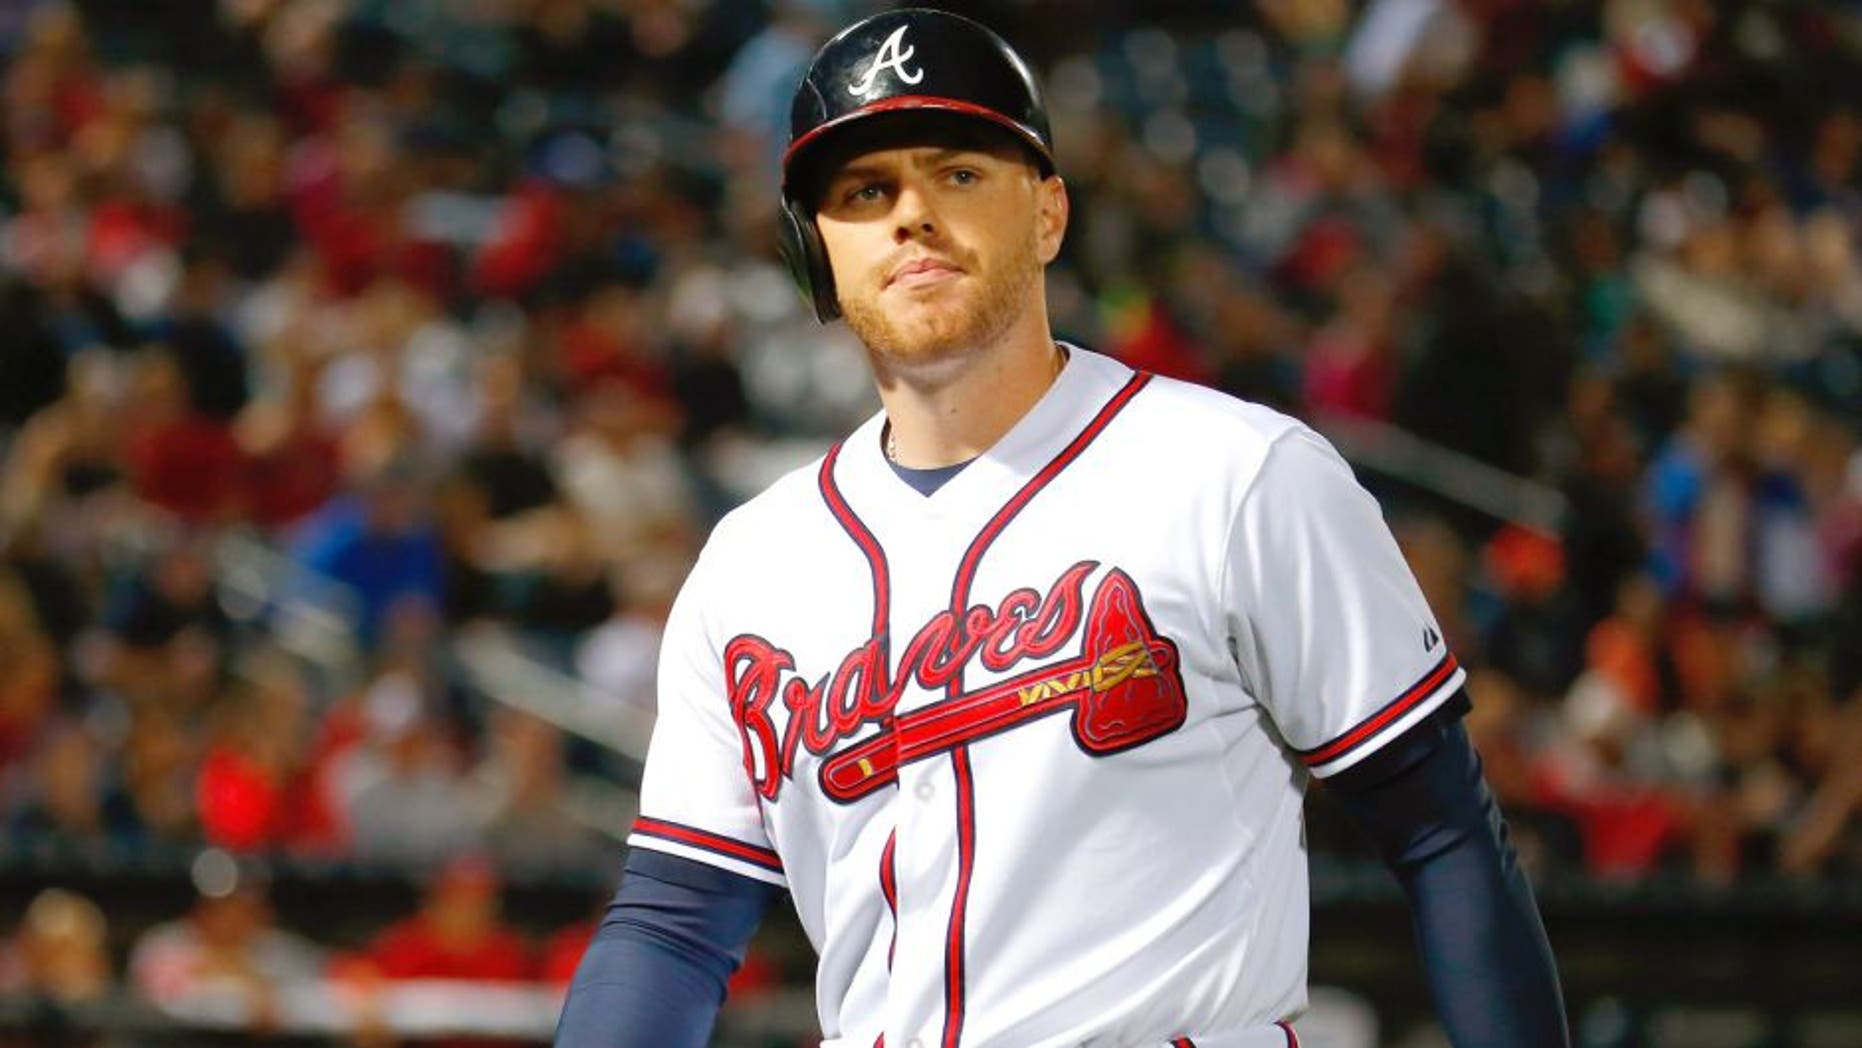 Freddie Freeman #5 of the Atlanta Braves reacts after flying out in the seventh inning against the Washington Nationals at Turner Field on October 1, 2015 in Atlanta, Georgia. (Photo by Kevin C. Cox/Getty Images)